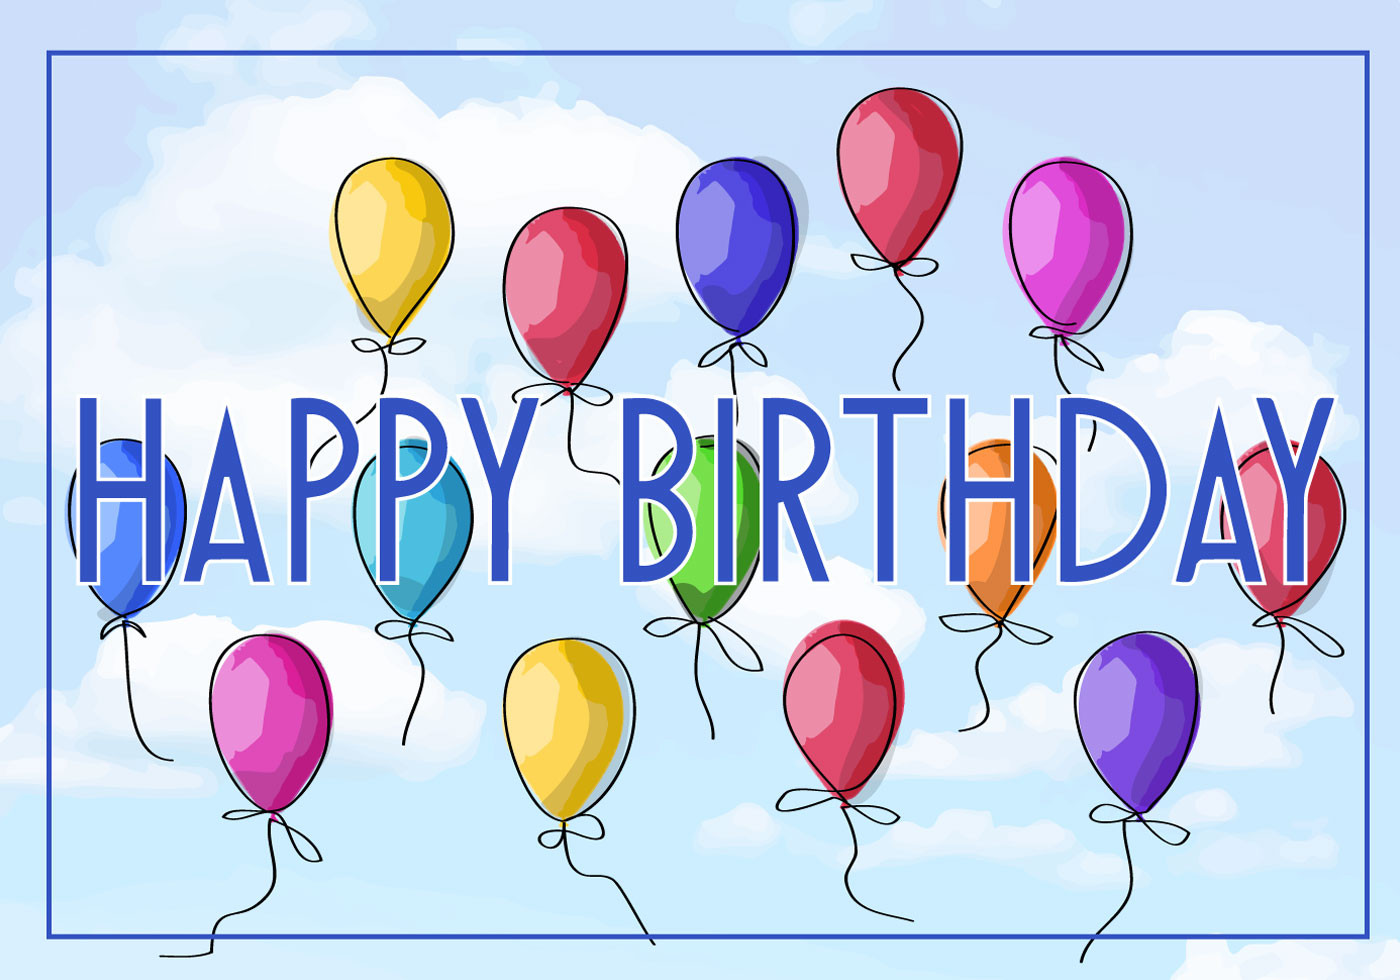 Free Download Birthday Card  Free Vector Illustration of a Happy Birthday Greeting Card